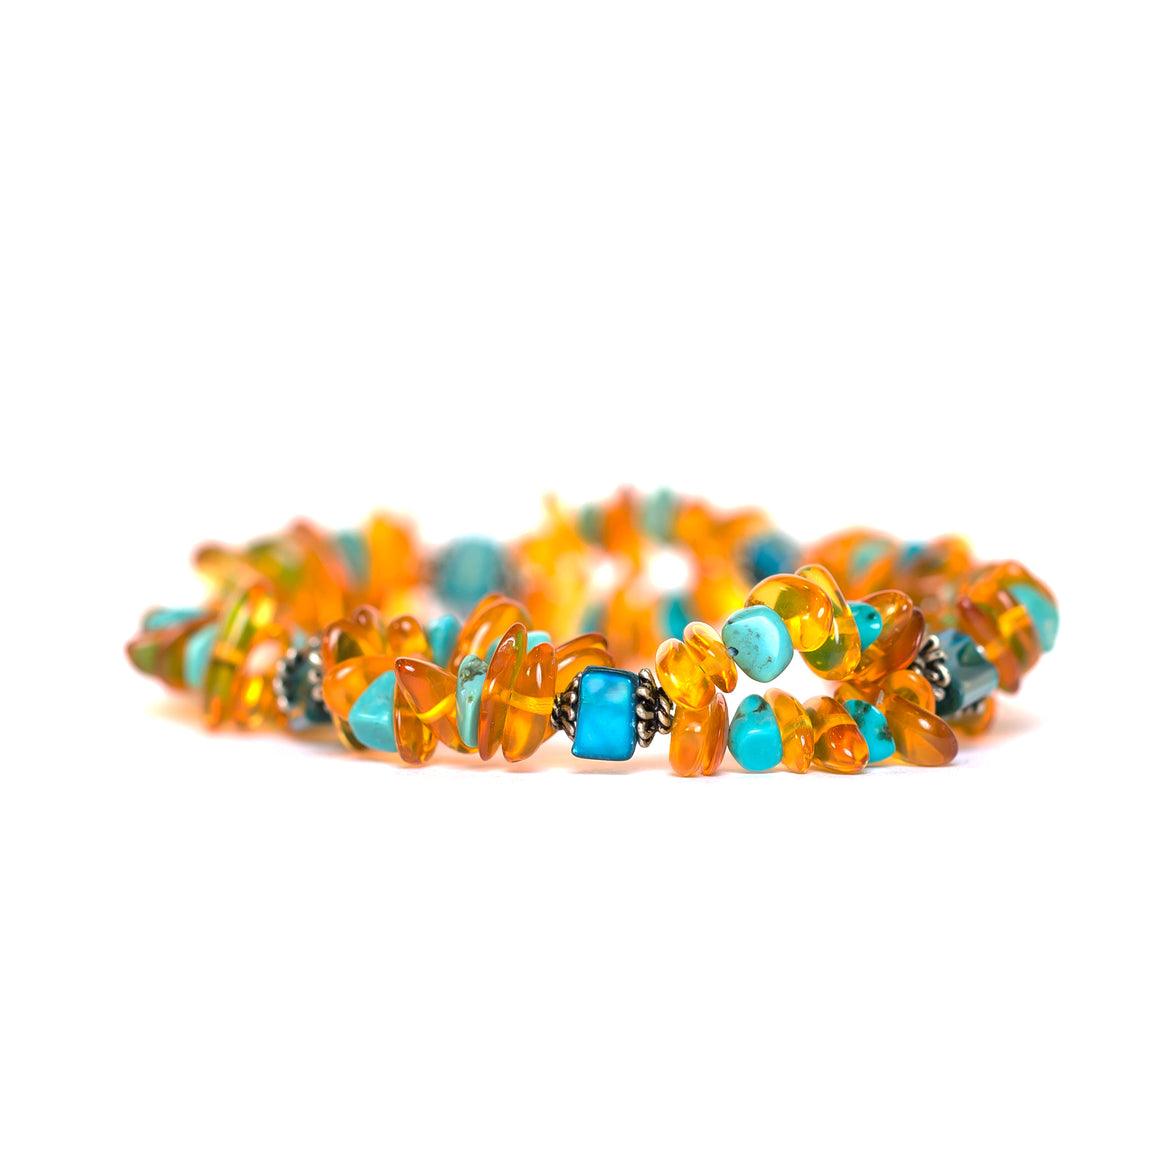 Amber Bracelet (double) with Mixed Turquoise in Jewelry for women